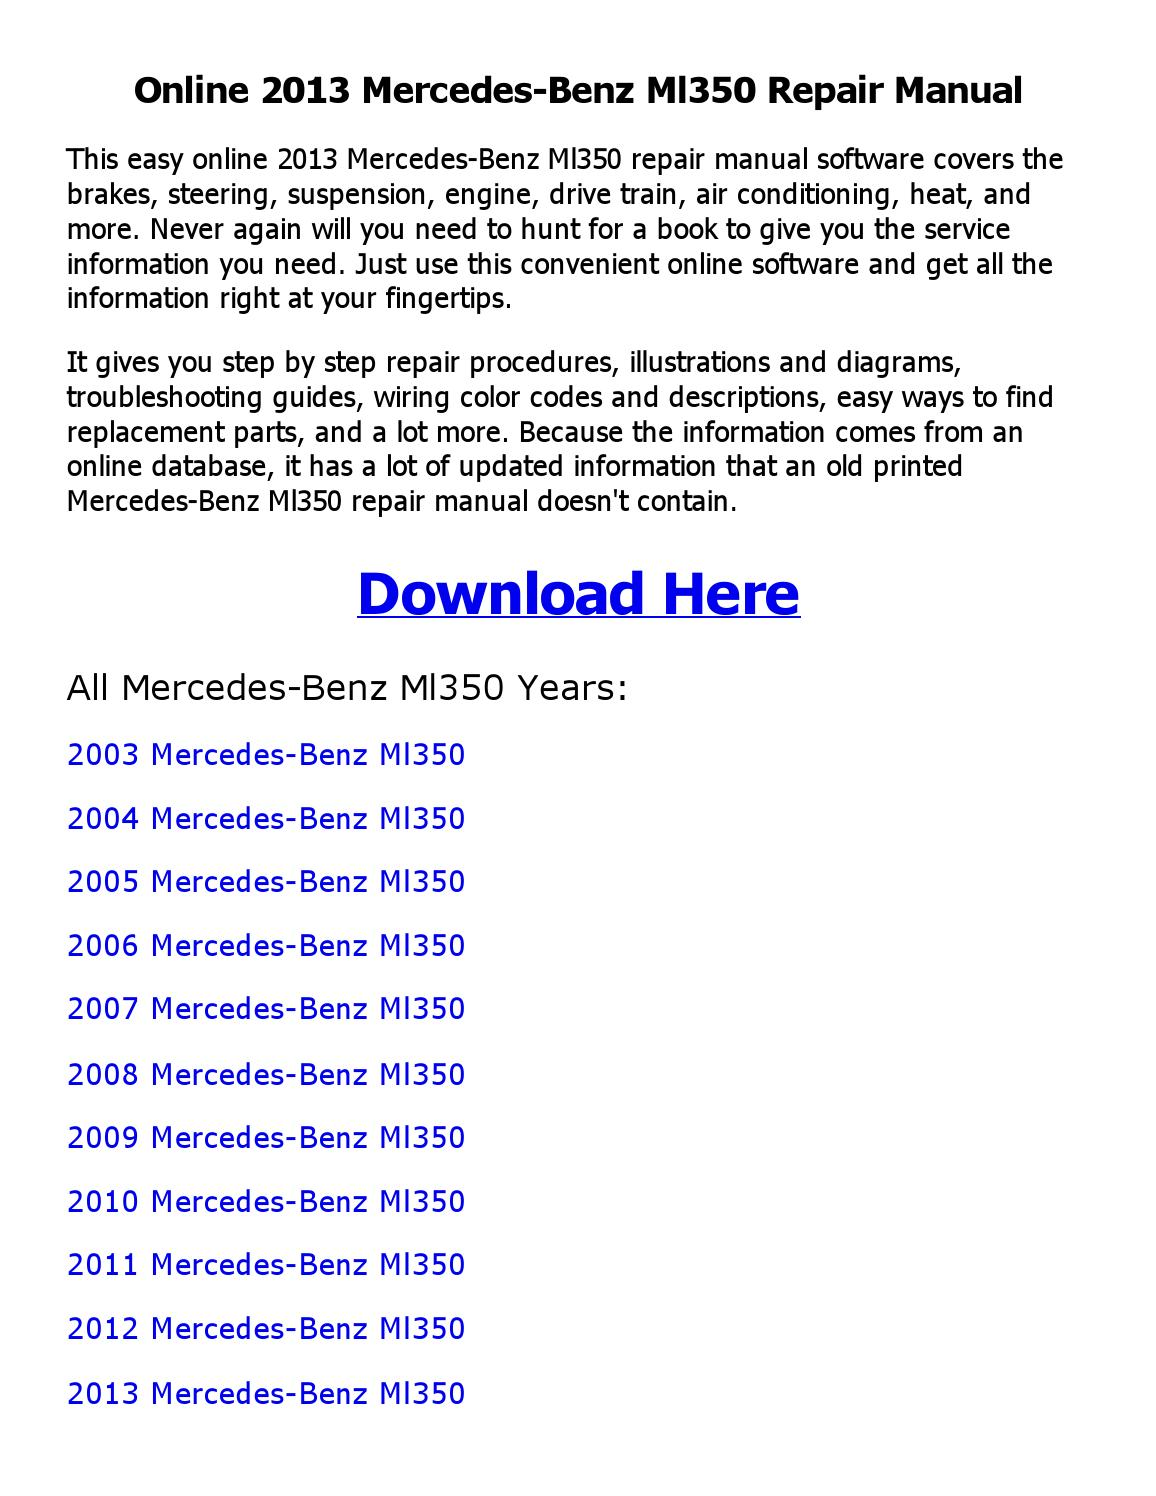 2013 mercedes benz ml350 repair manual online by akosiPriix - issuu